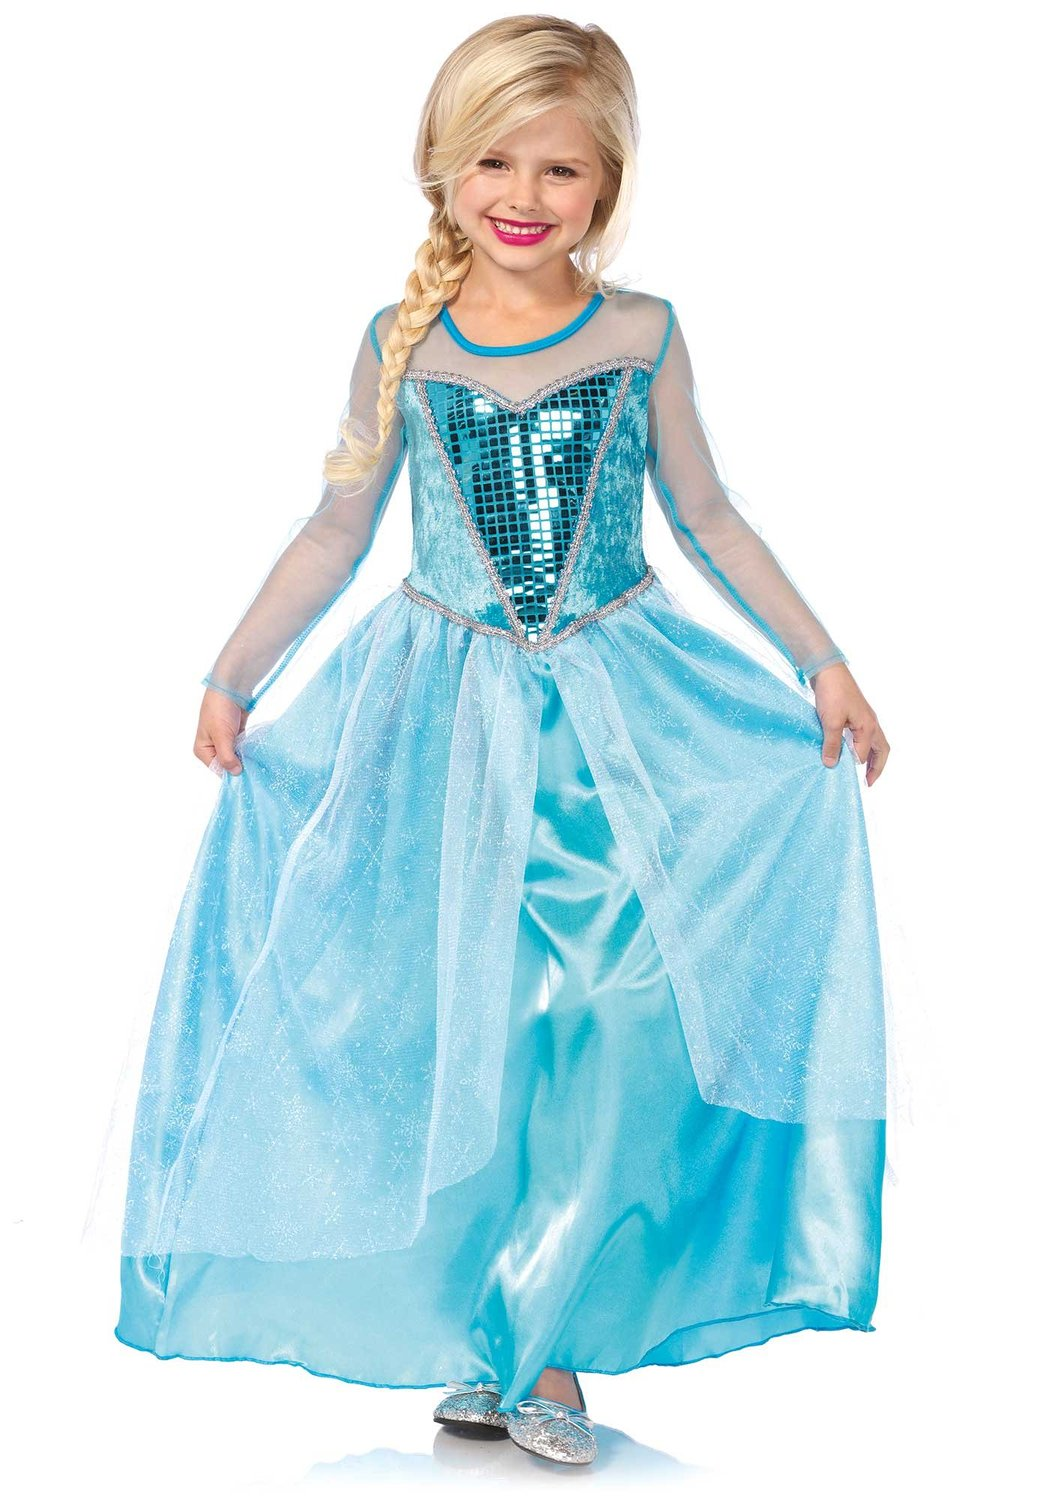 LegAvenue Halloween Costume For Kids [S] Fantasy Snow Queen, Long Dress w/ Sequin Bodice And Glitter Snowflake Skirt Overlay